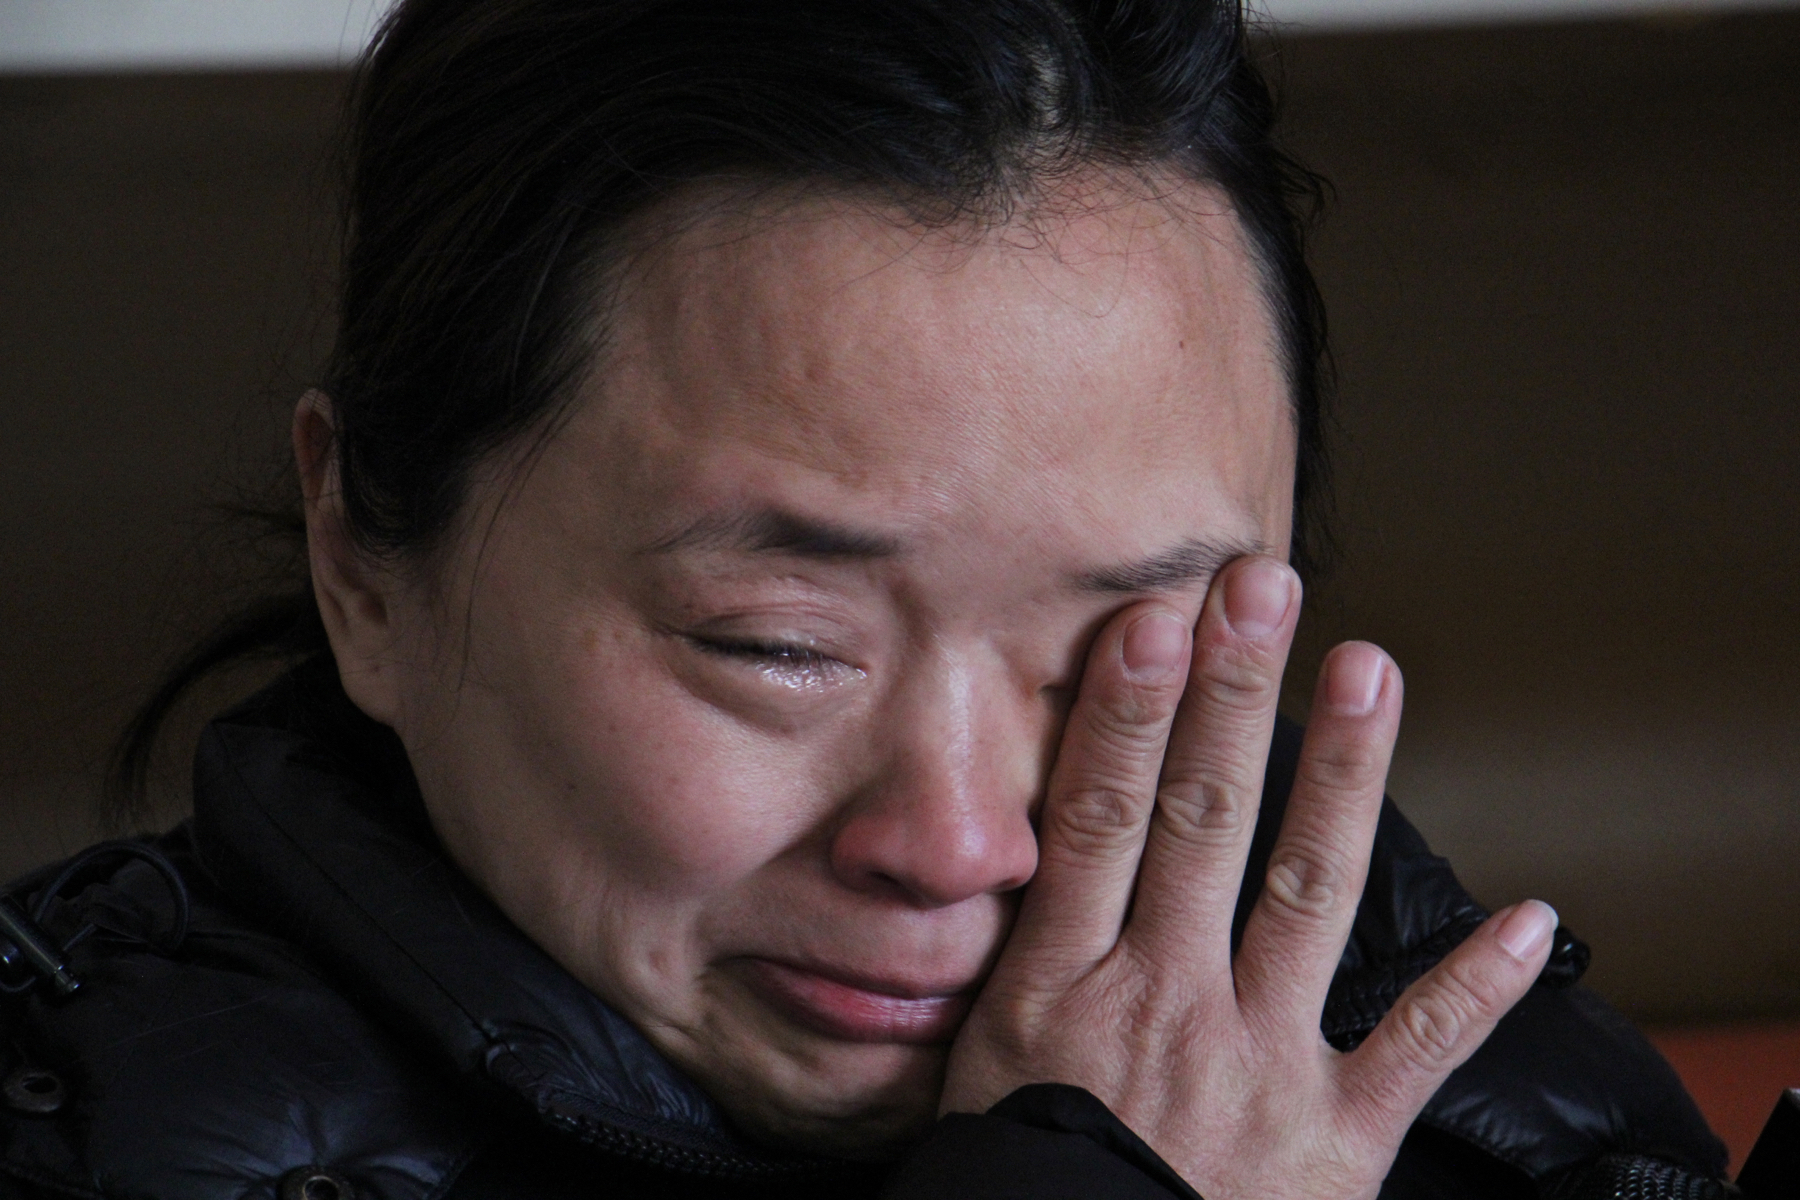 Stop-and-go owner Michelle Tran fights back tears at the thought of losing her plexiglass protection.